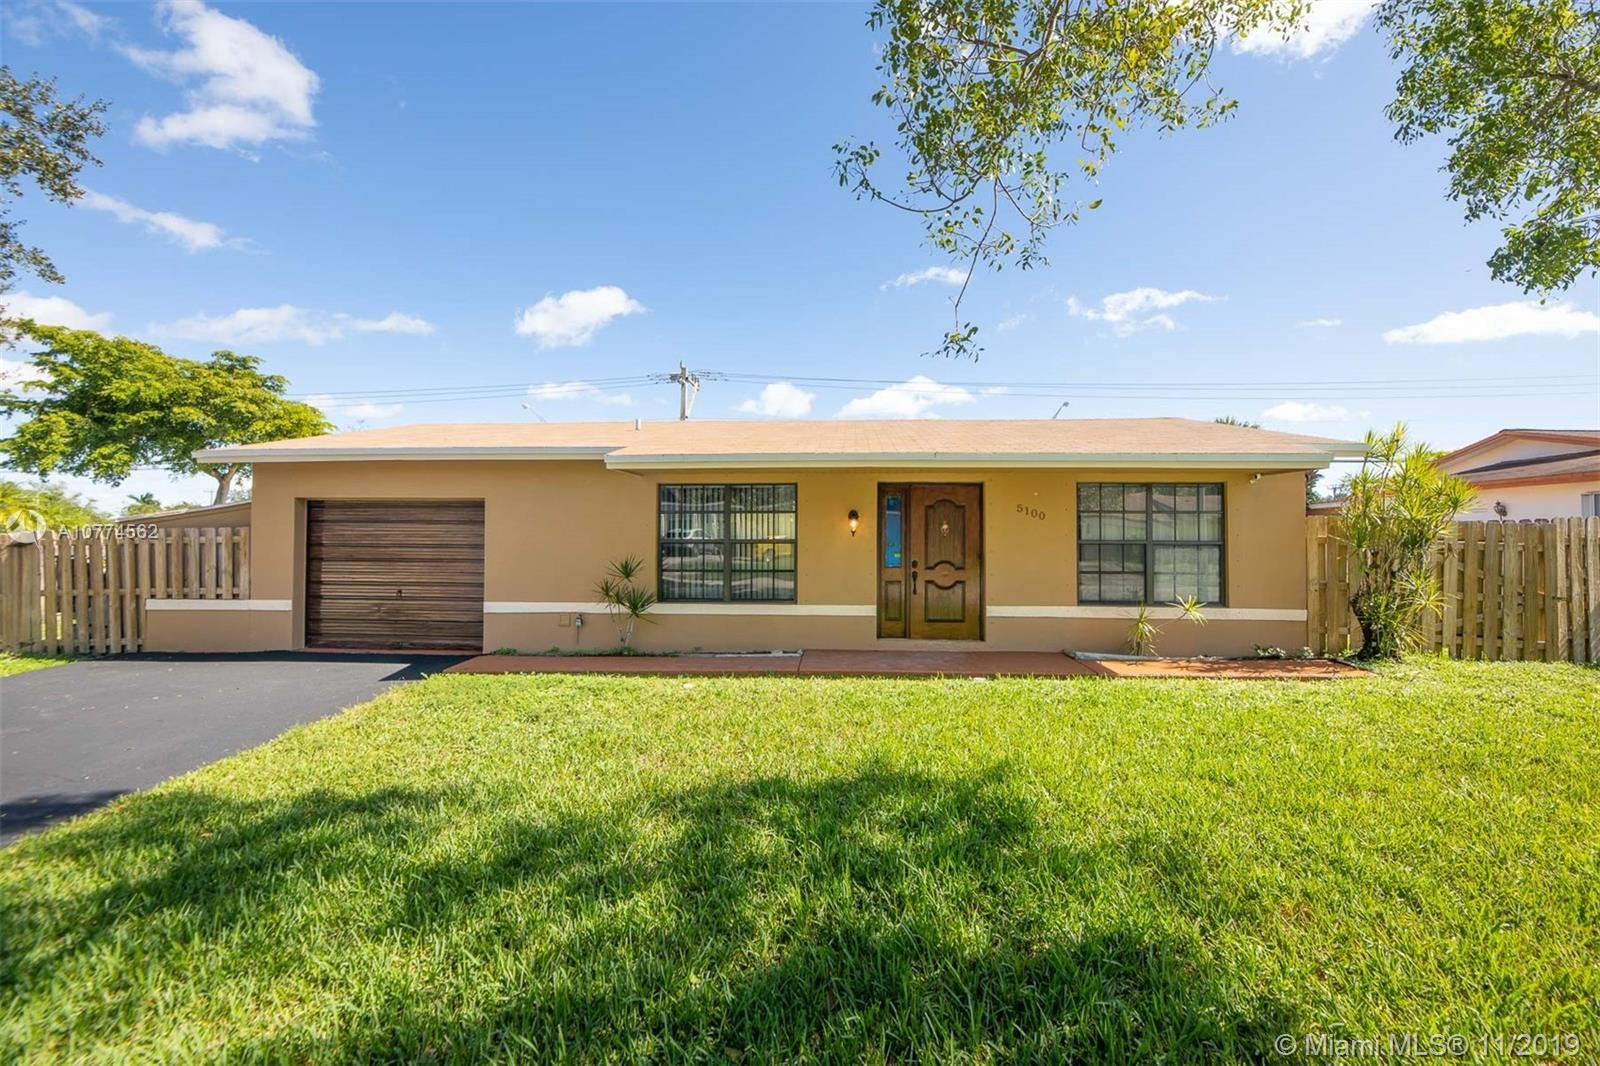 Photo of 5100 SW 101st Ave, Cooper City, FL 33328 (MLS # A10774562)